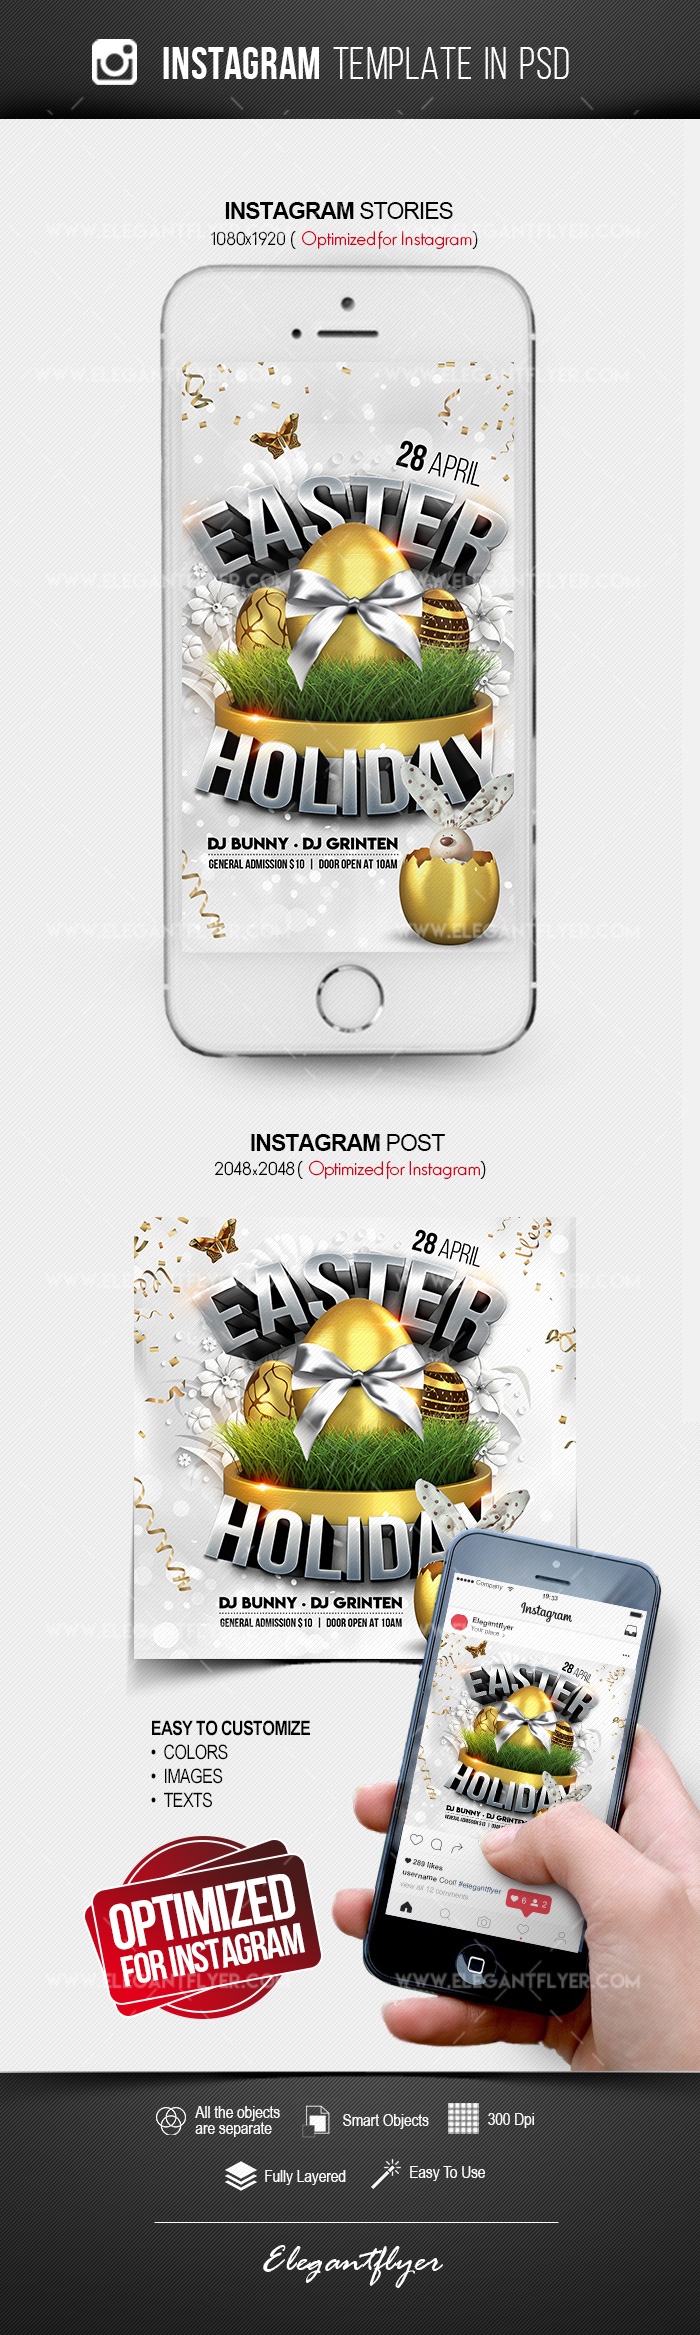 Easter Holiday – Instagram Stories Template in PSD + Post Templates